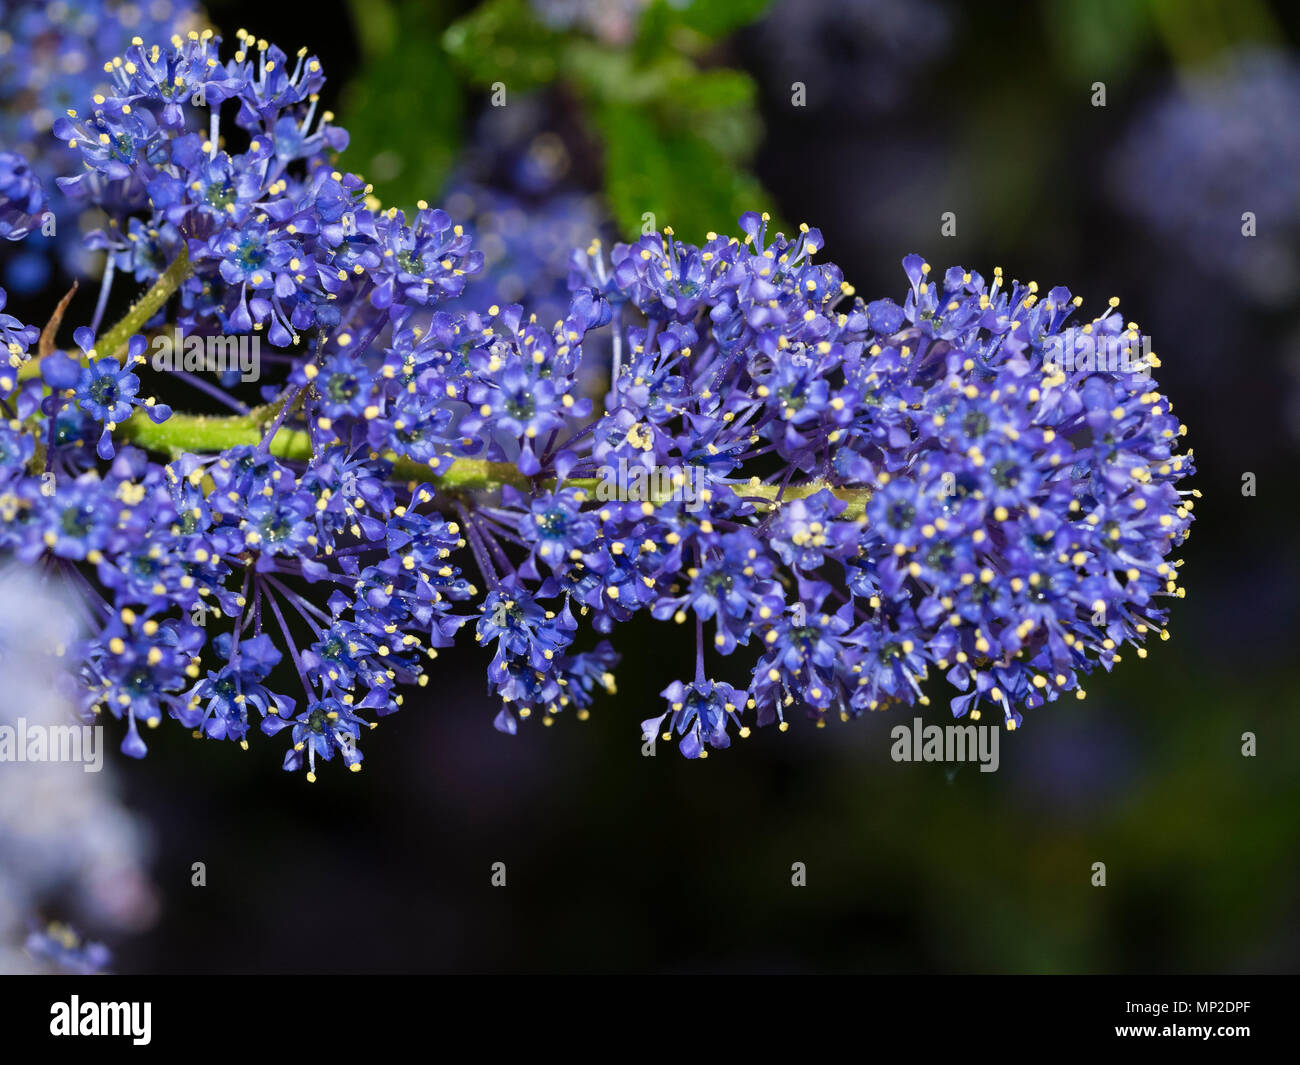 Densely packed blue flowers in the head of the Californian lilac, Ceanothus 'Concha' - Stock Image